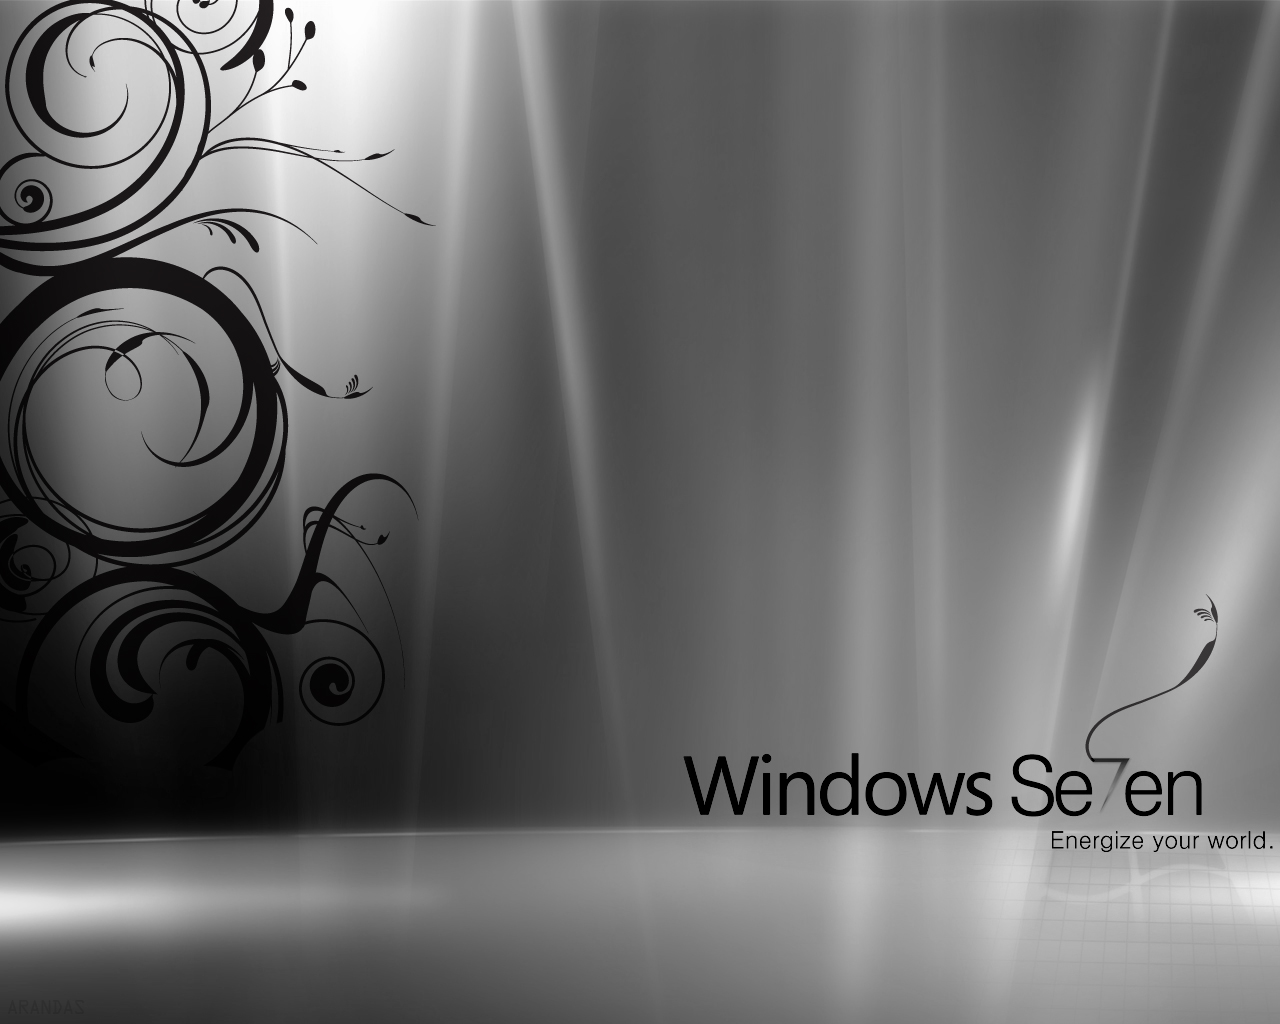 http://3.bp.blogspot.com/-w5i8vYgqVRM/TVgJiWZTWdI/AAAAAAAABv8/uWzlvLtvozo/s1600/windows_7_vector_grey_wallpaper.jpg